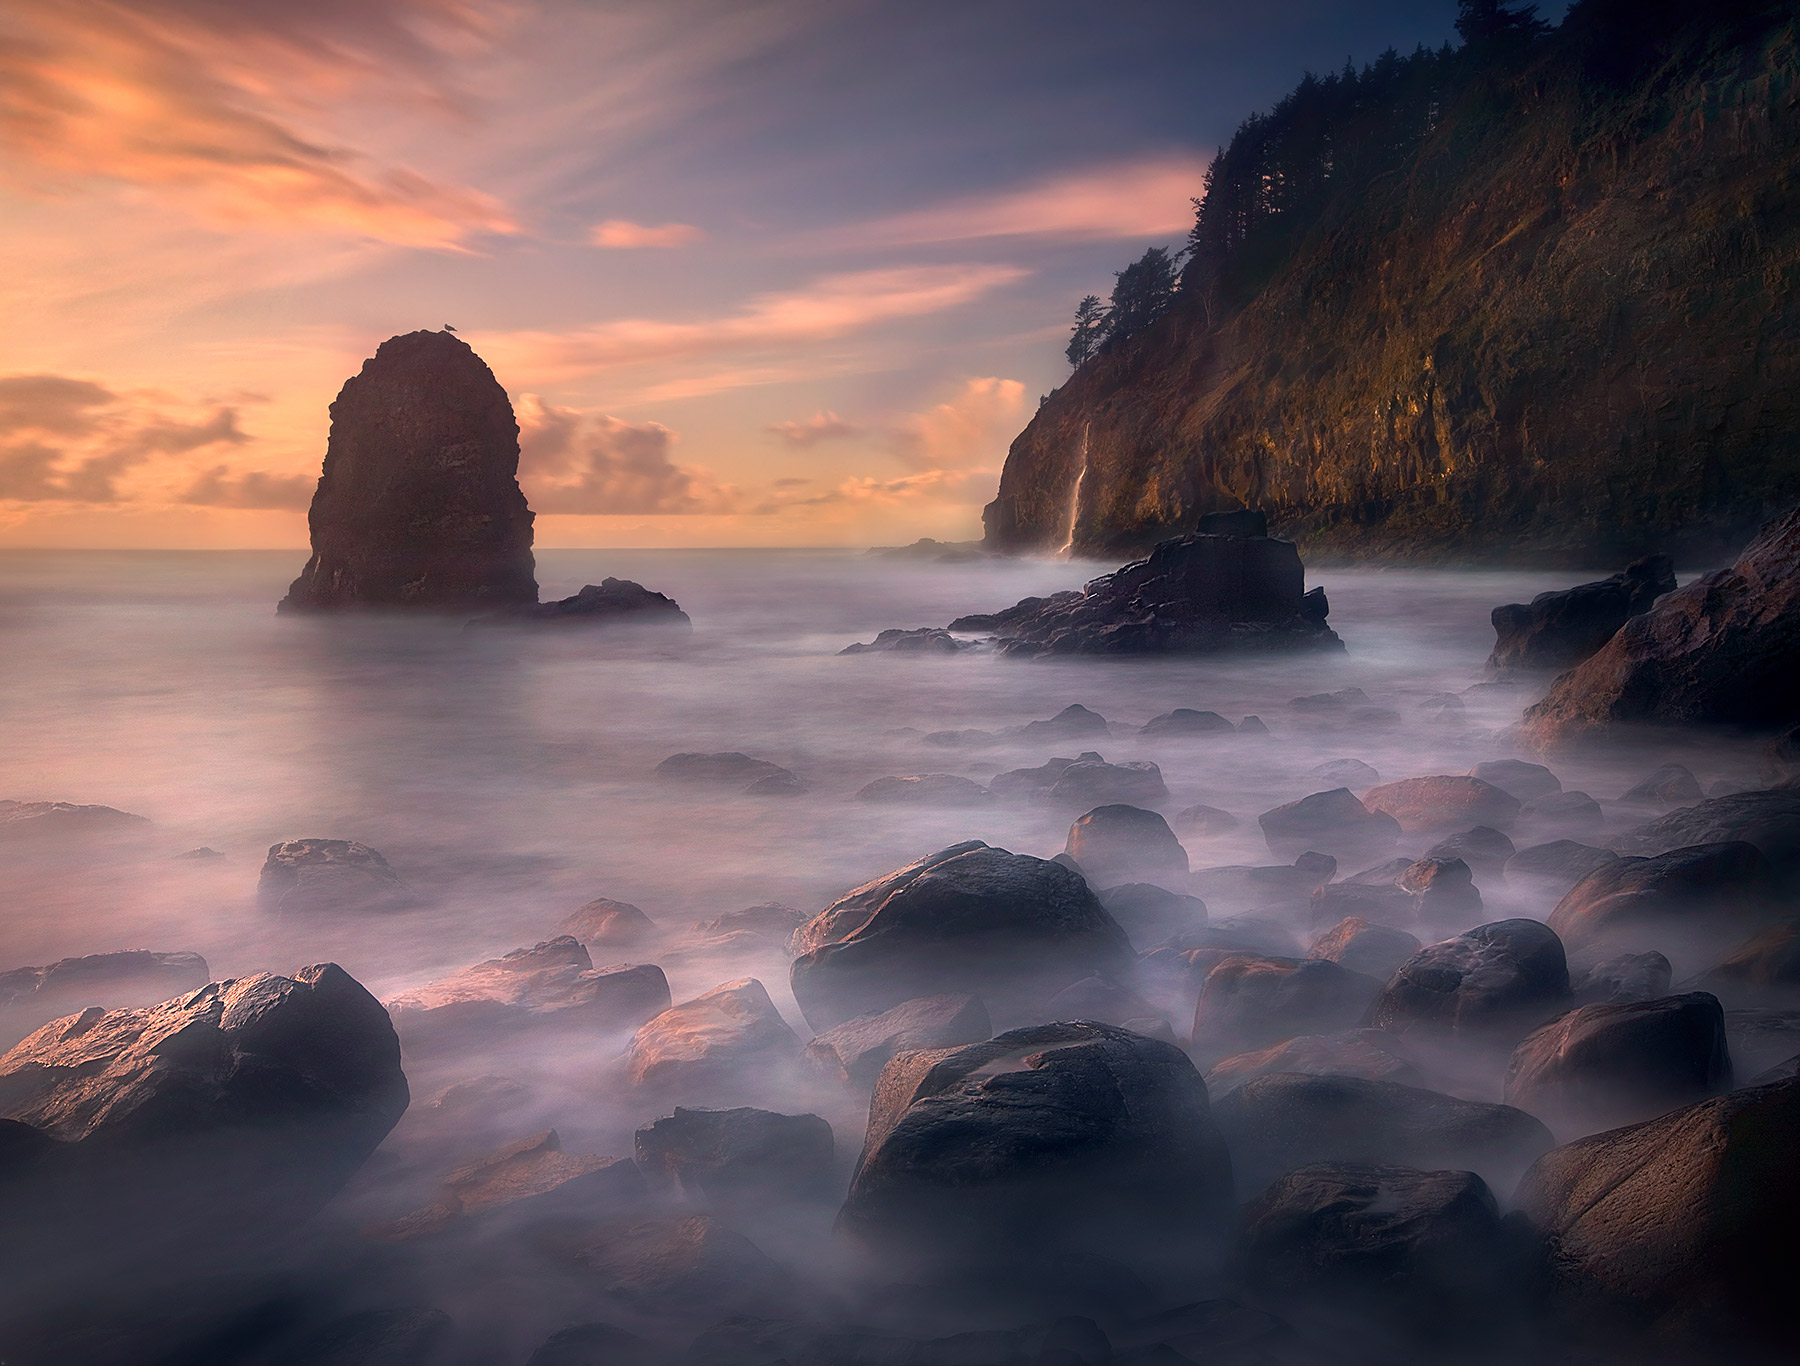 Long exposure turns Pacific waters to mist at sunset on Oregon's Coast. A waterfall pours off the cape in the background.